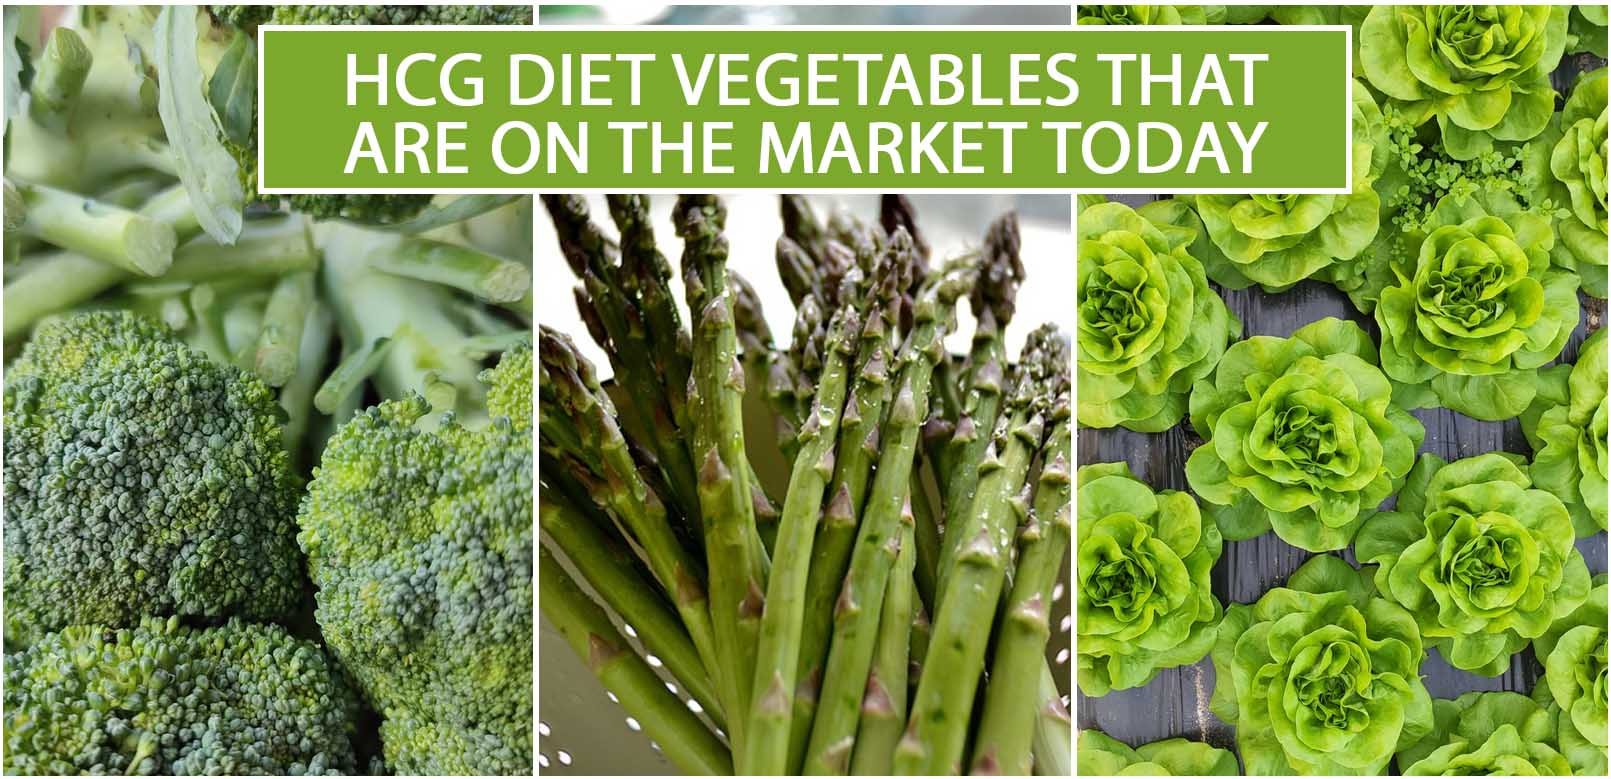 HCG DIET VEGETABLES THAT ARE ON THE MARKET TODAY